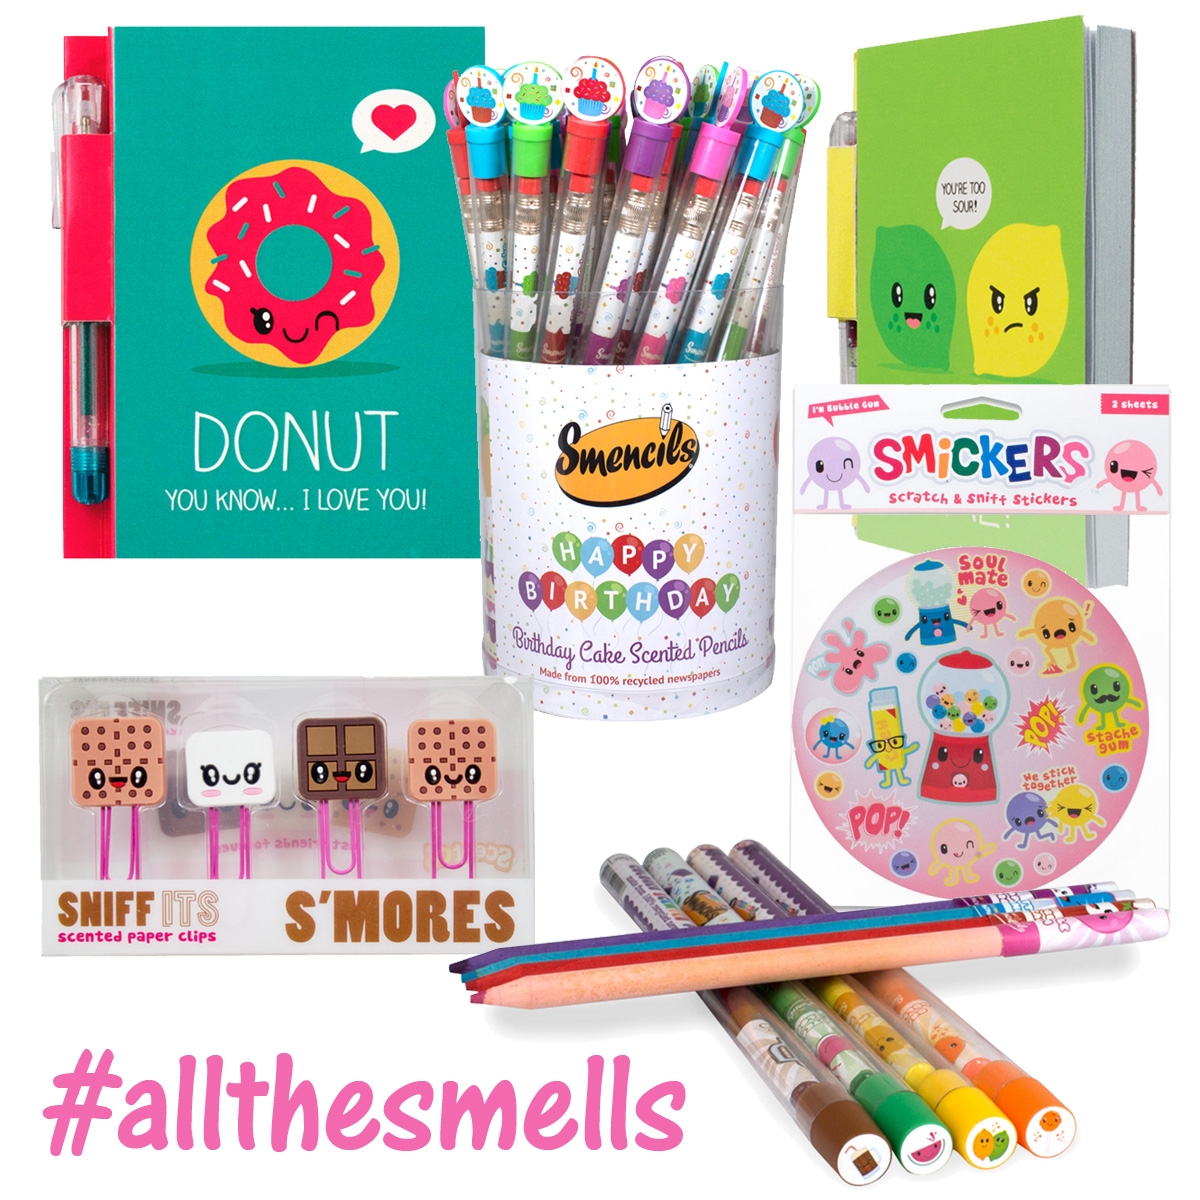 Fun scented pencils, pens, stickers and more!